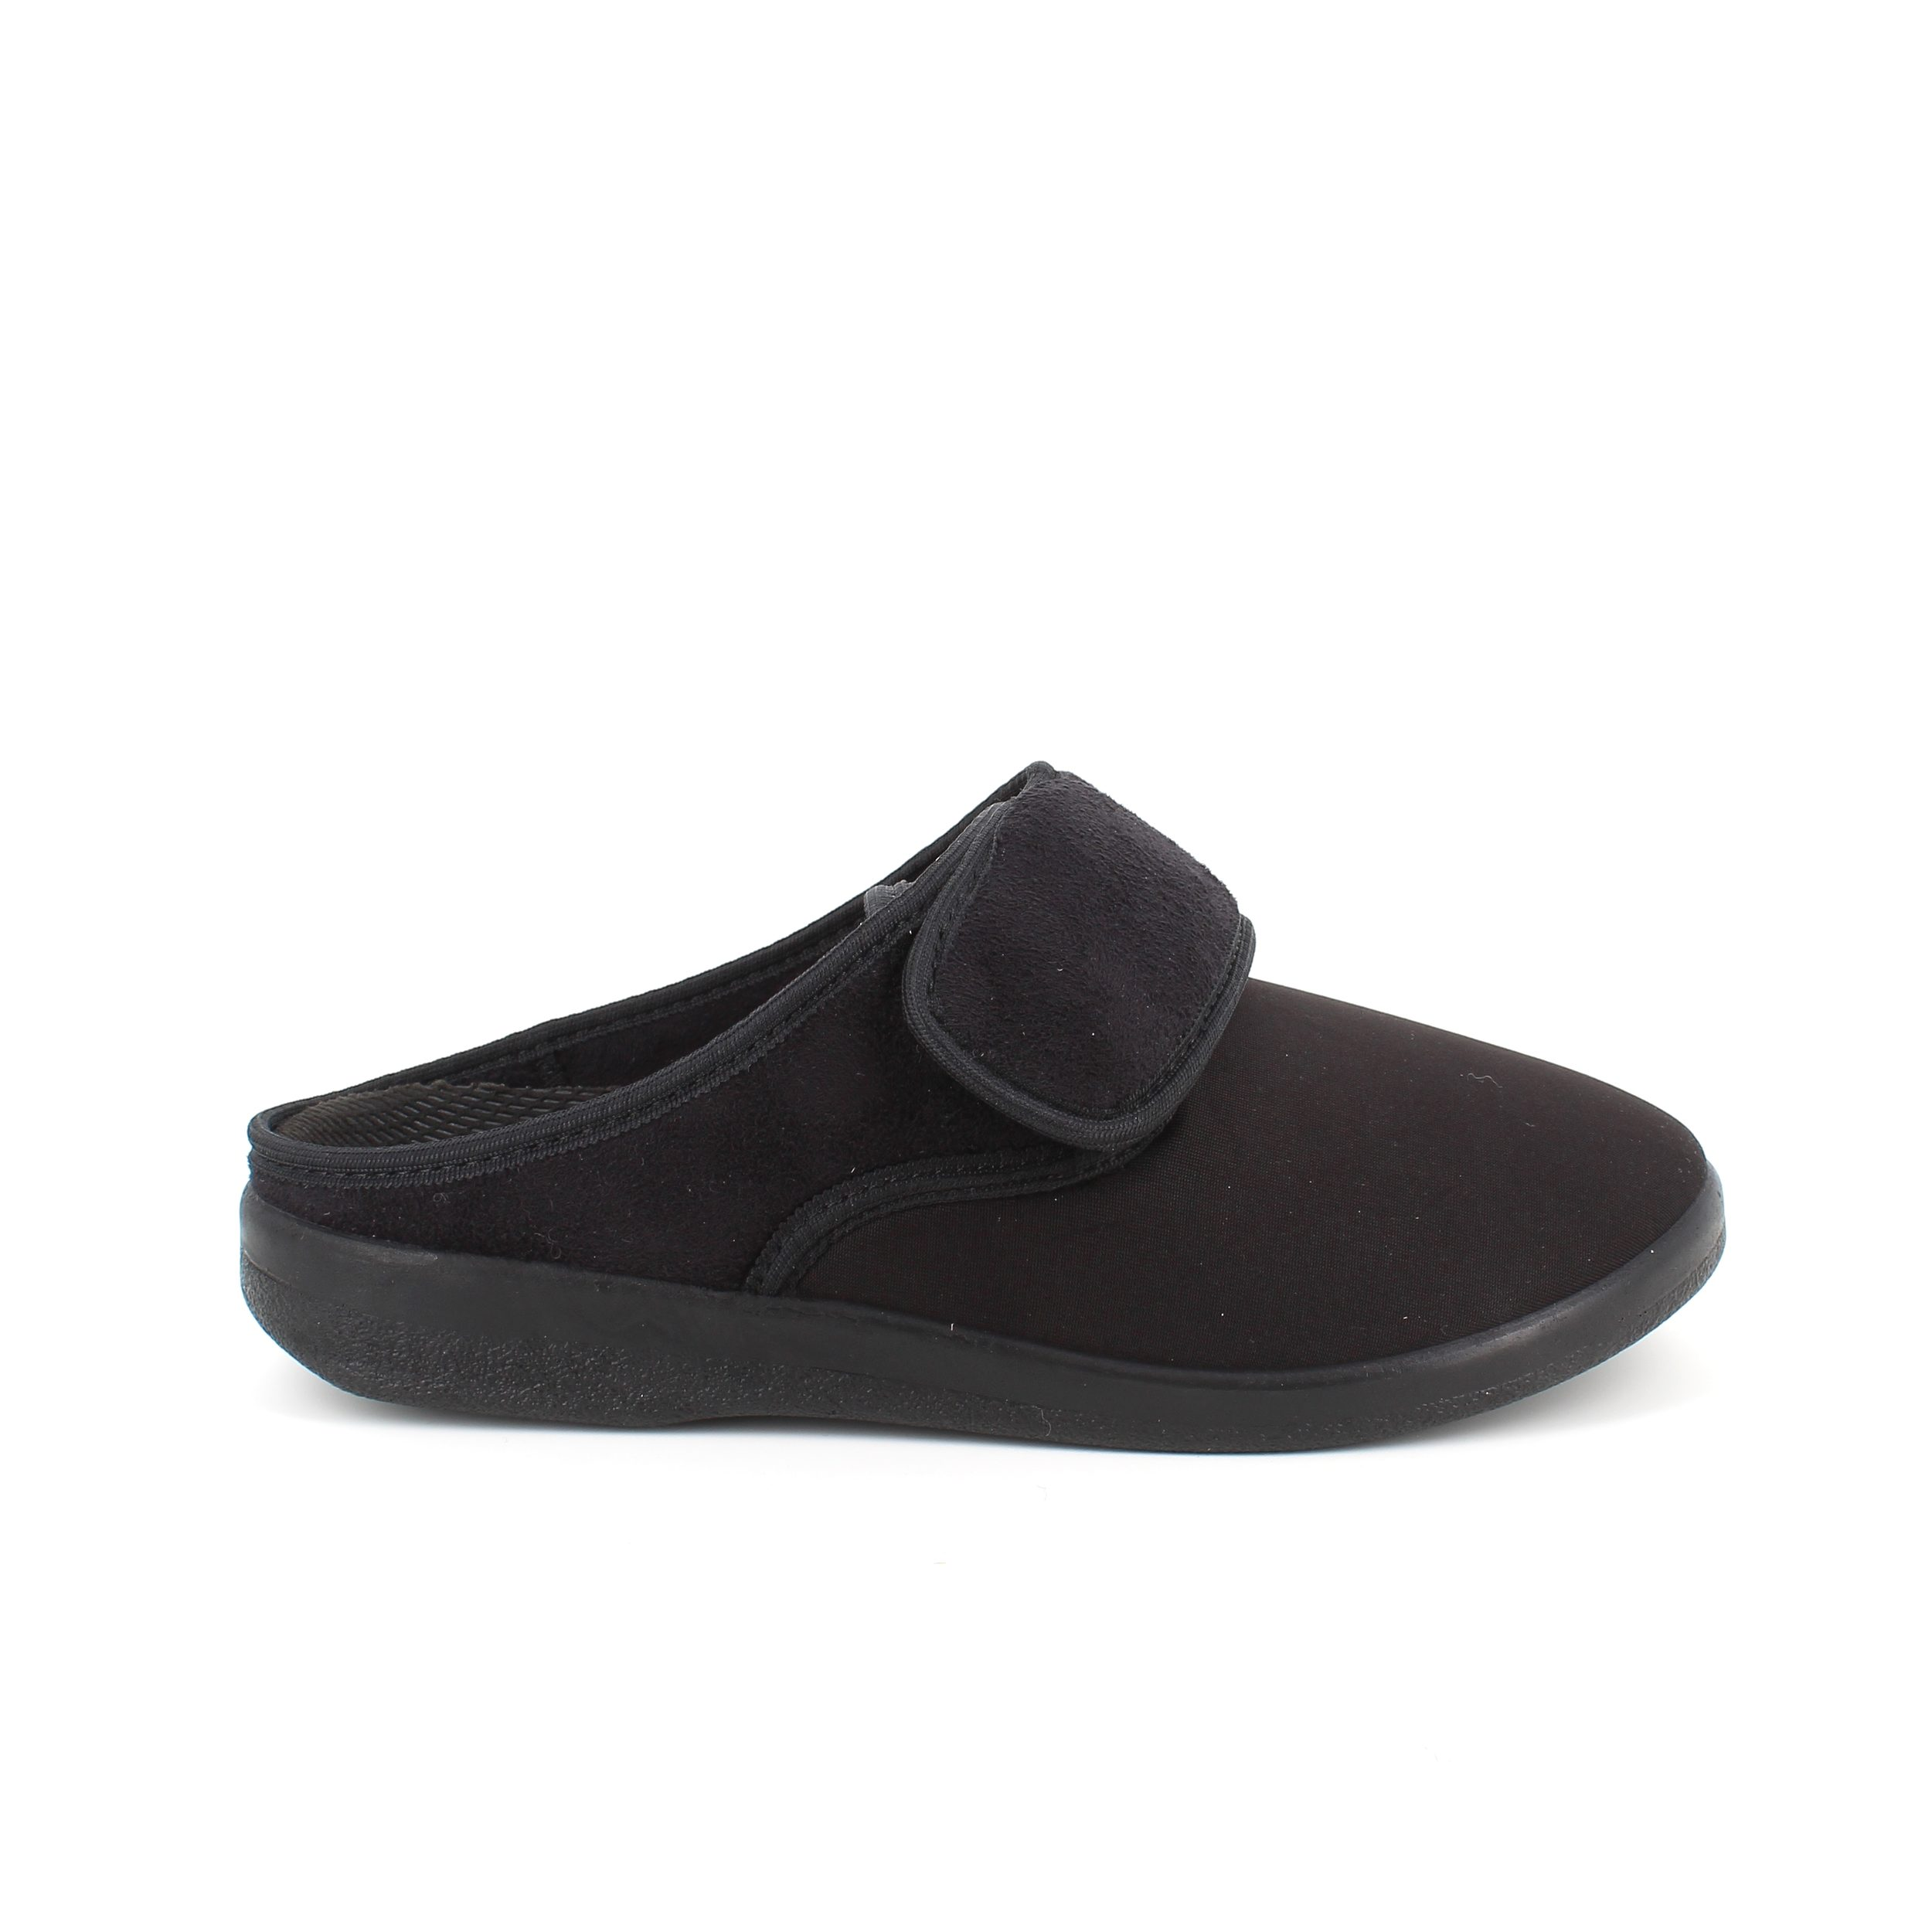 Image of   Bred sko fra OrtoMed slip in model med velcro omkring vristen - 42